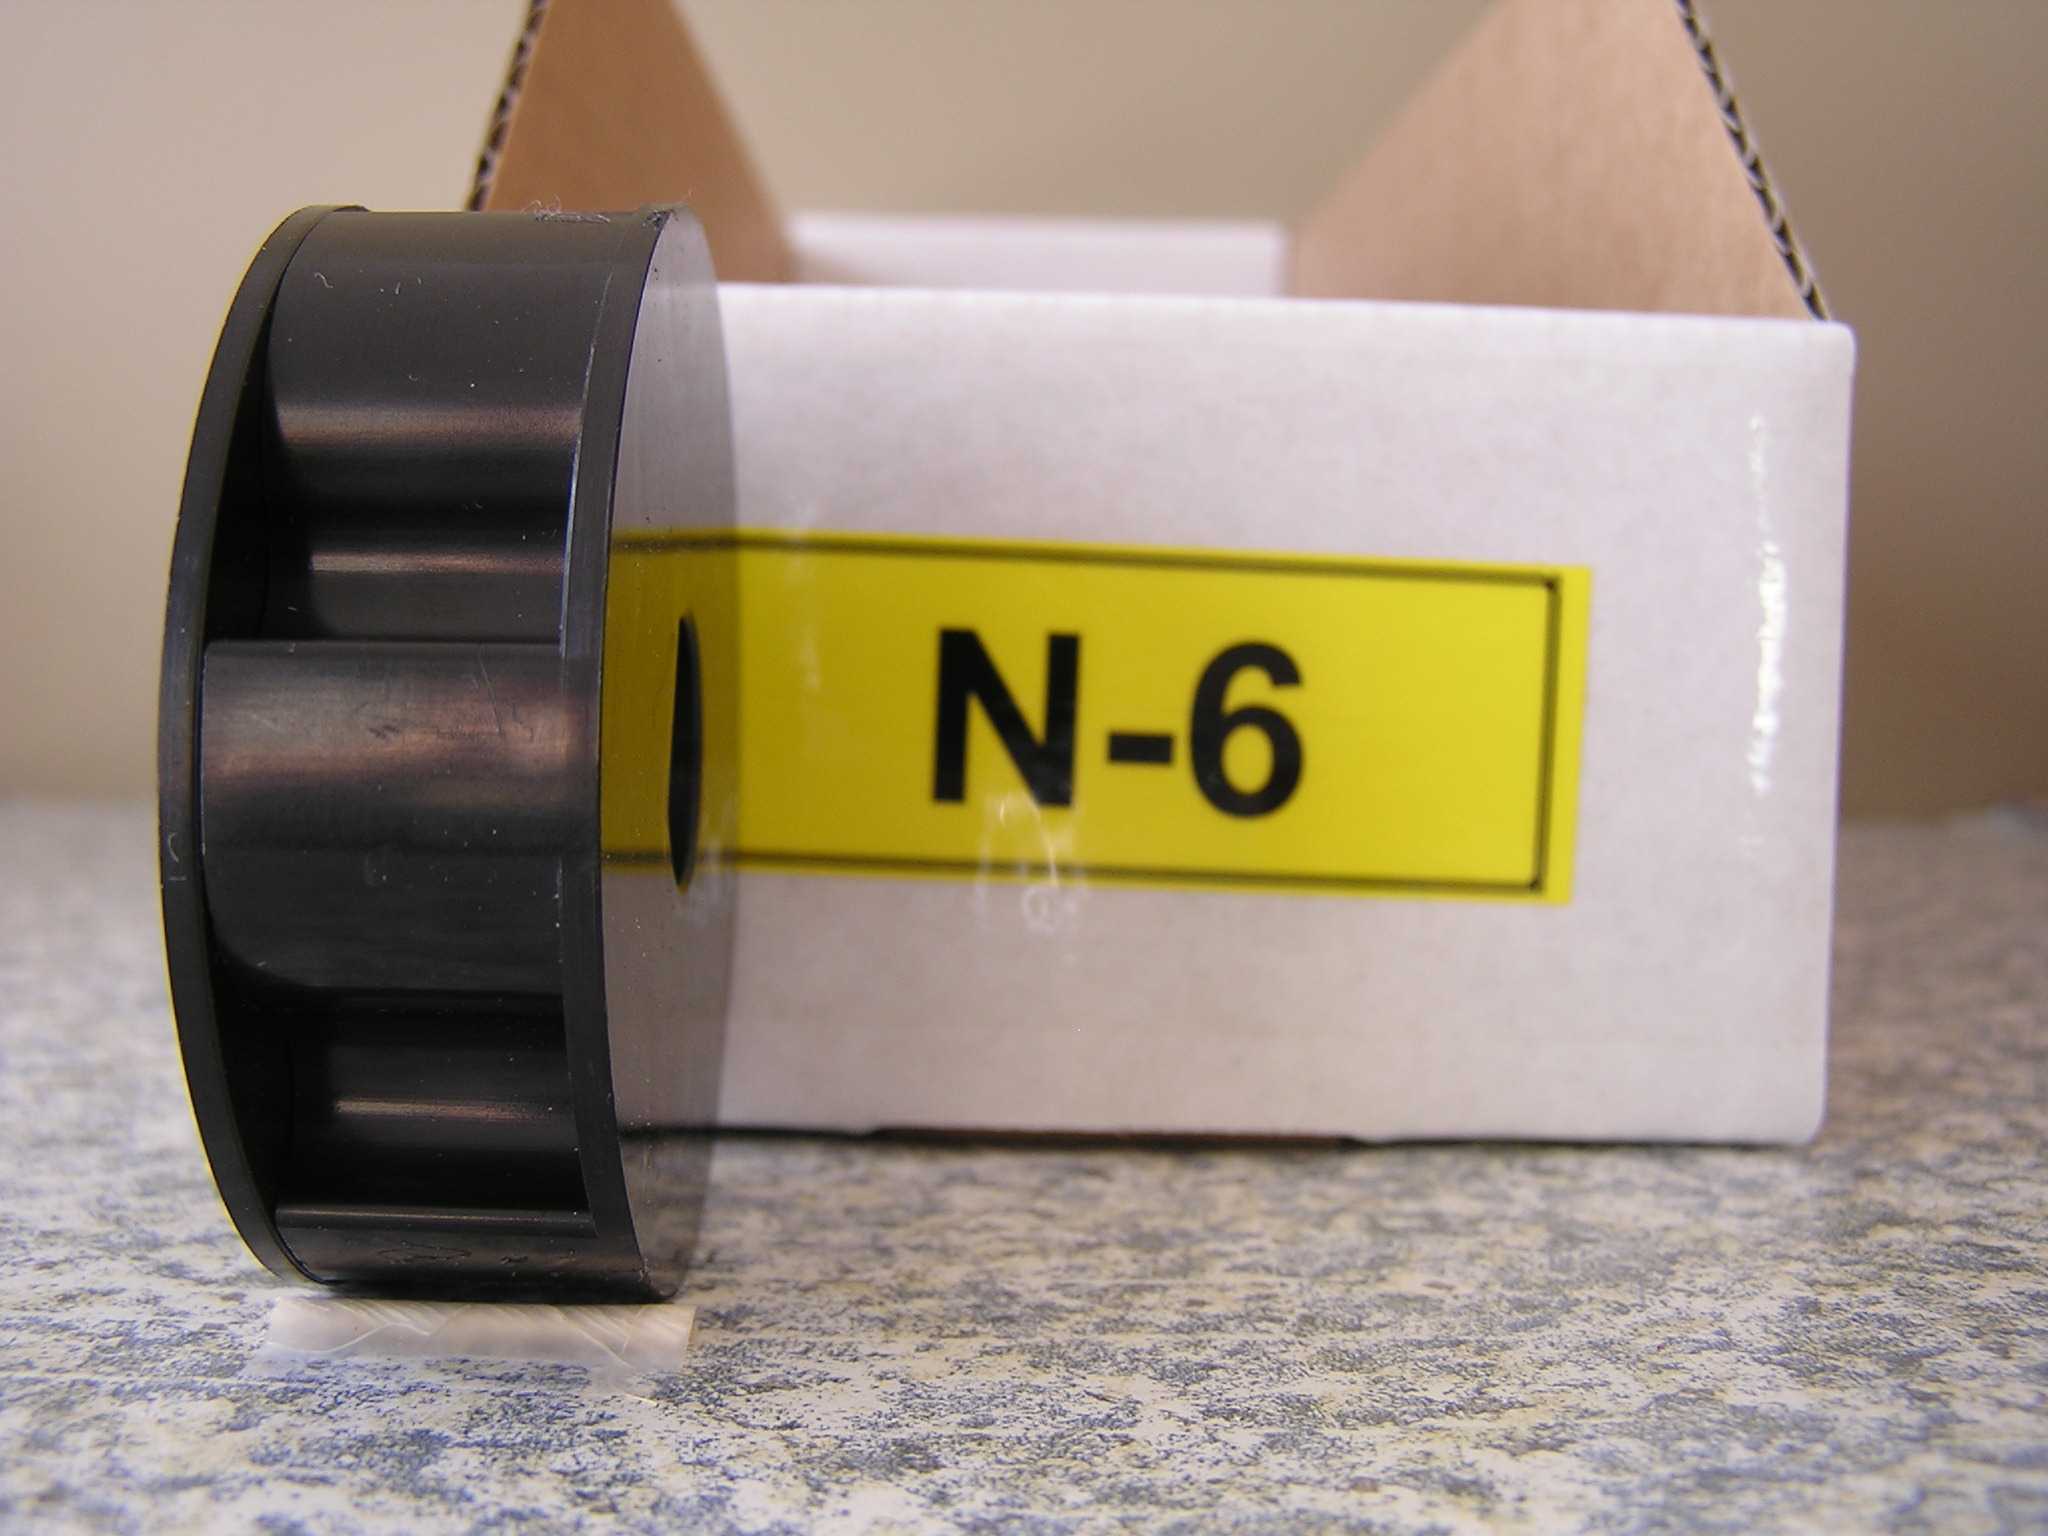 N-6 Roller for Jang Seeder, Rectangular Slot, 6 Slots in the Roller